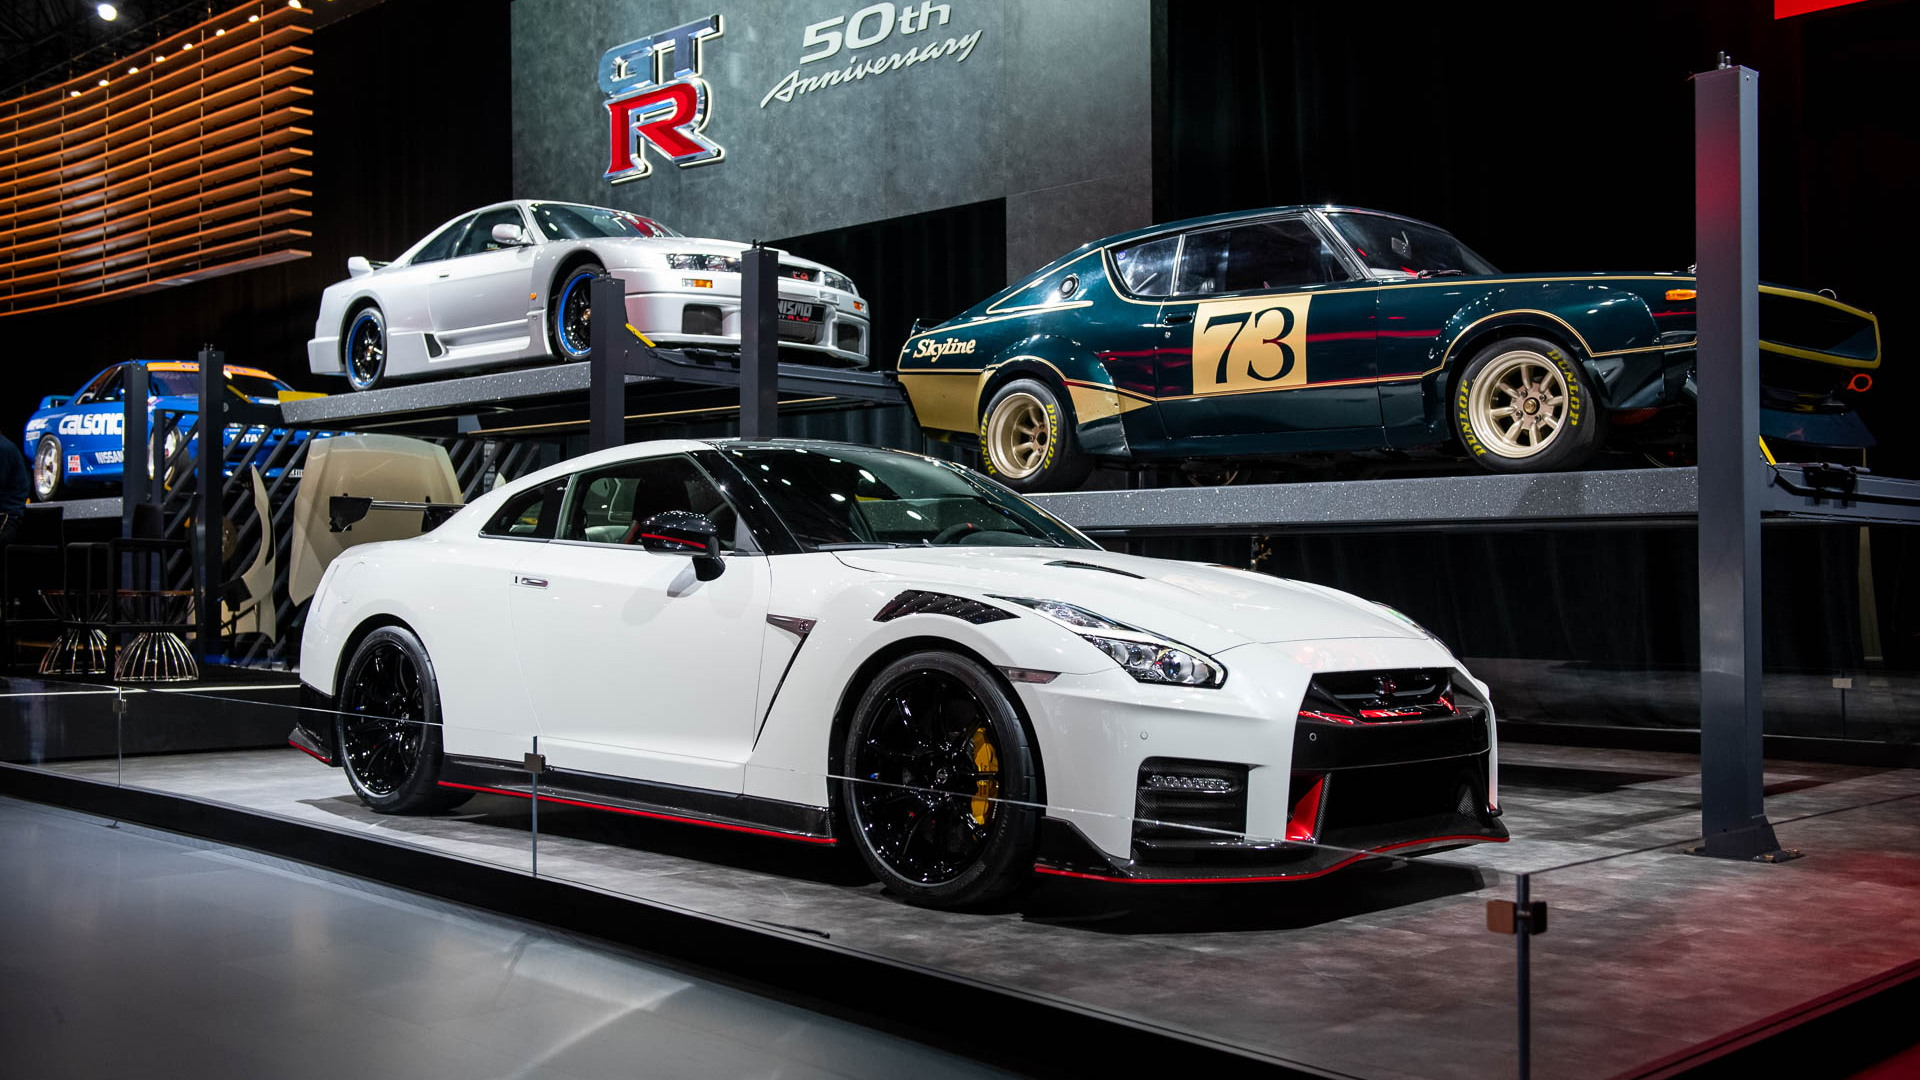 2020 Nissan GT-R NISMO, 2019 New York International Auto Show